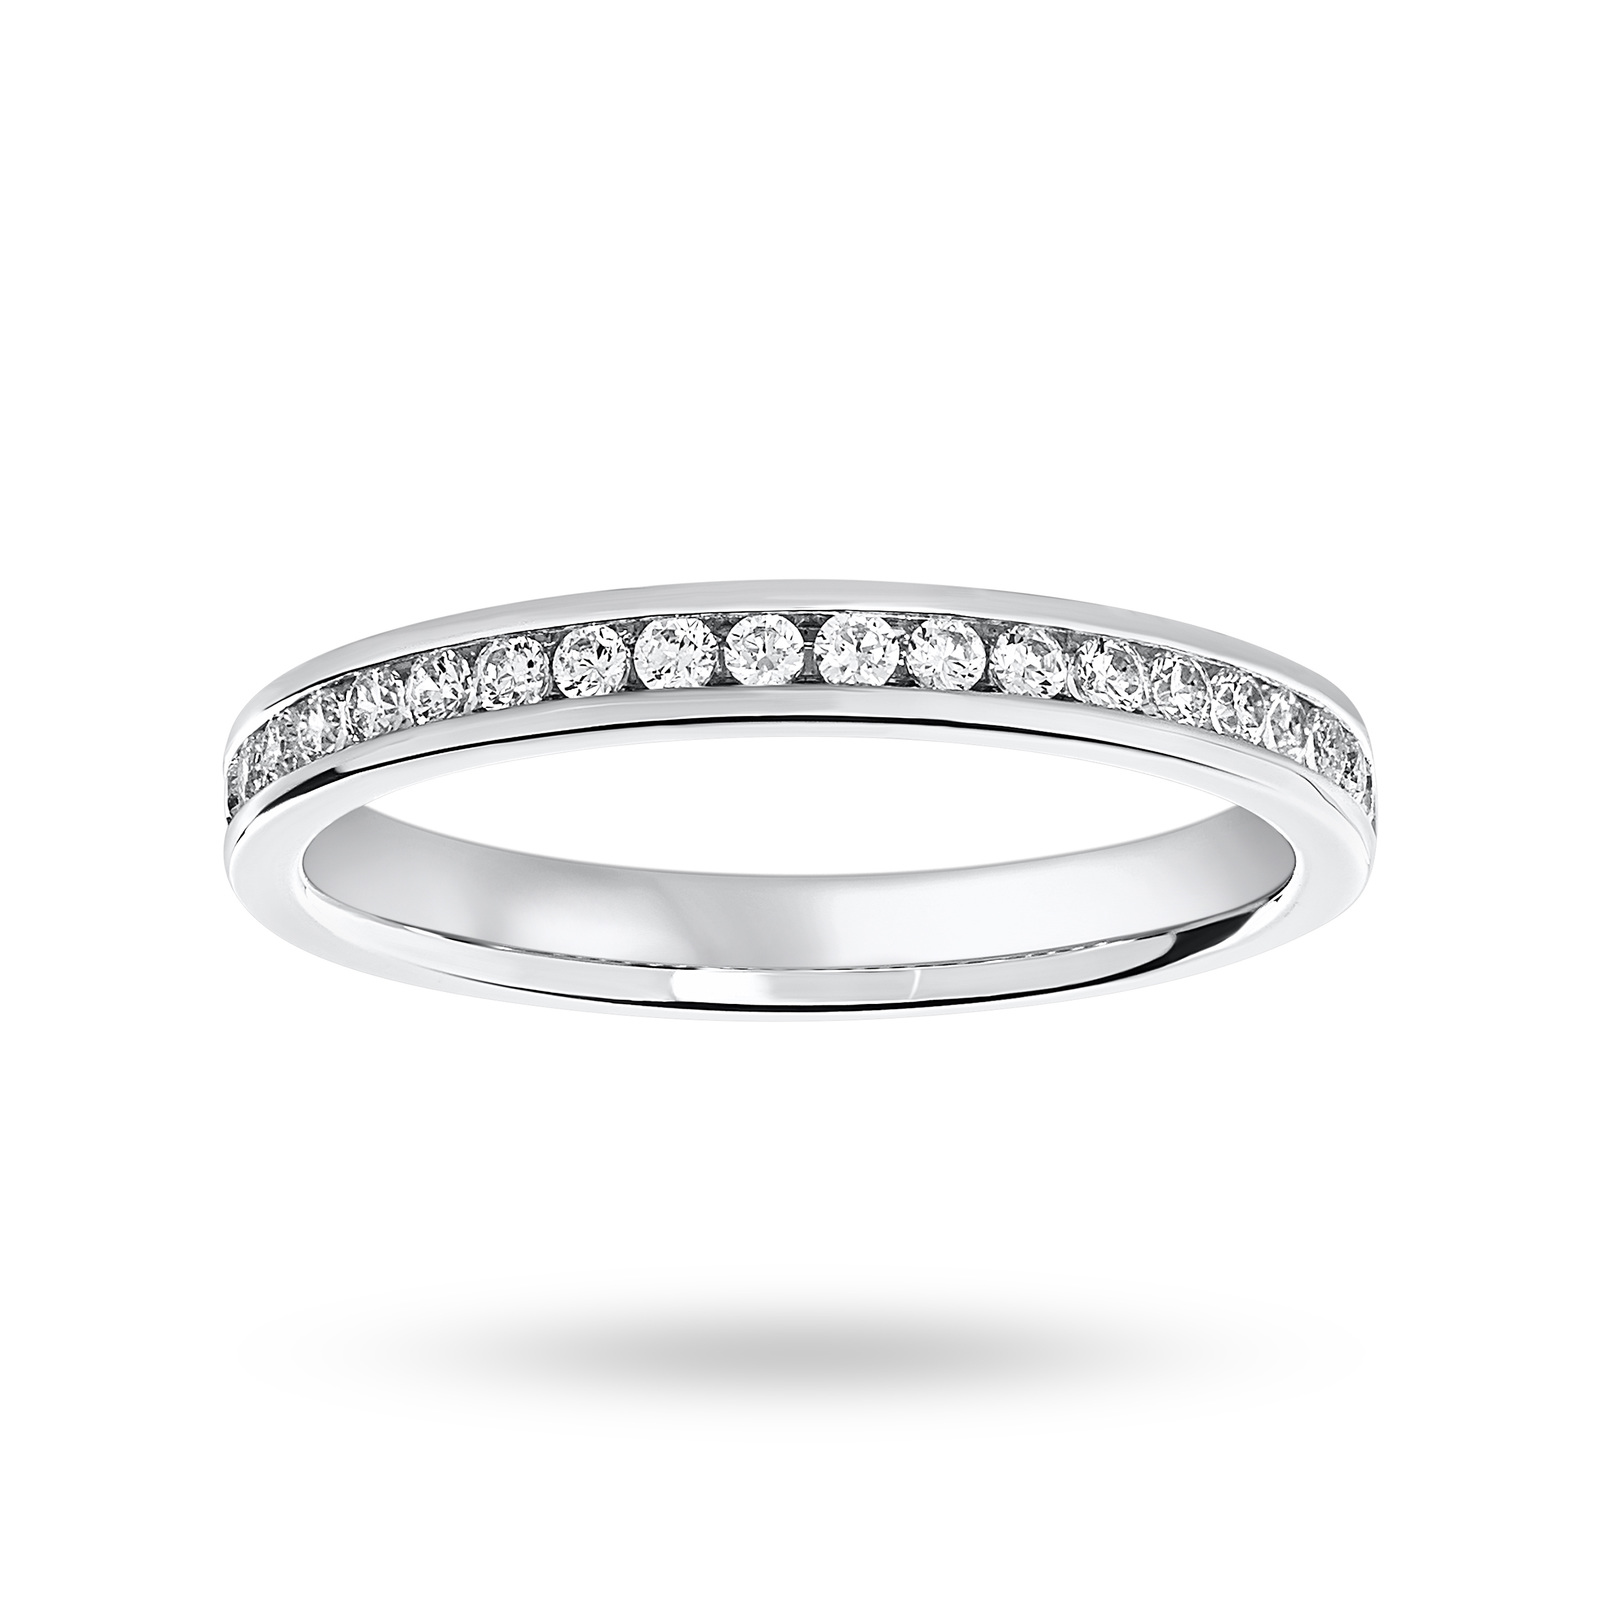 Platinum 0.25 Carat Brilliant Cut Half Eternity Ring